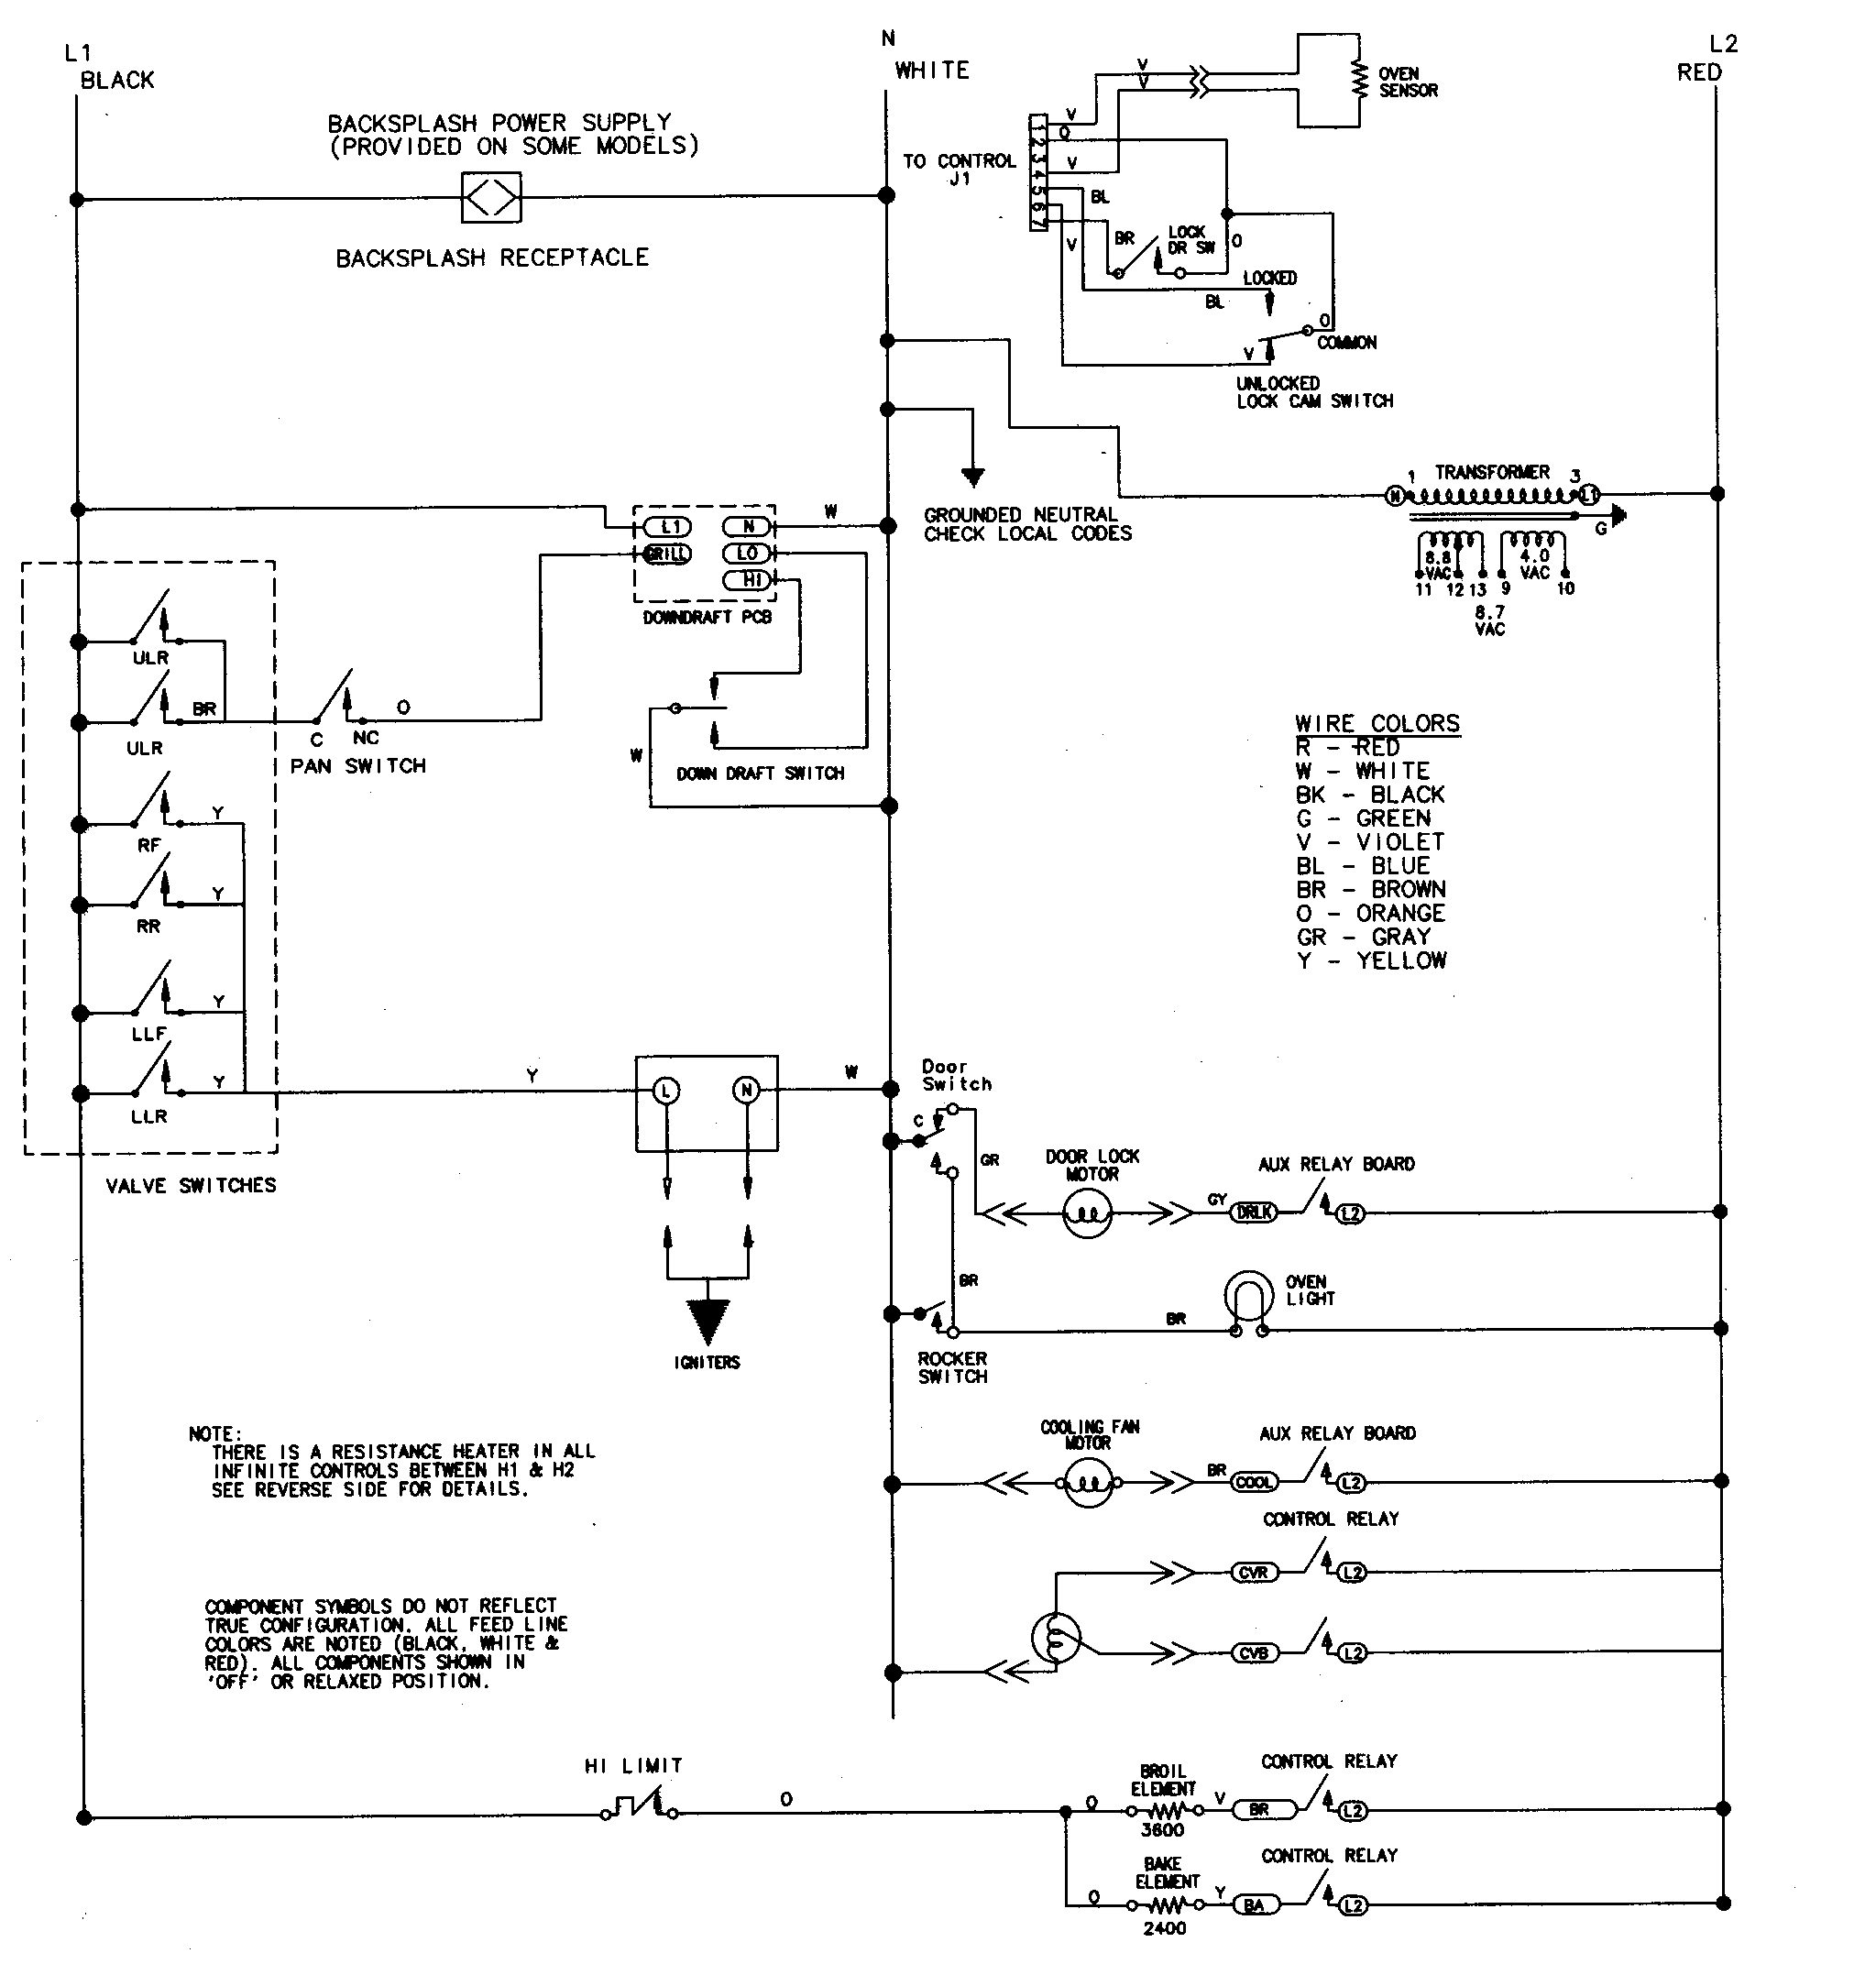 Maytag Dryer Timer Not Working on